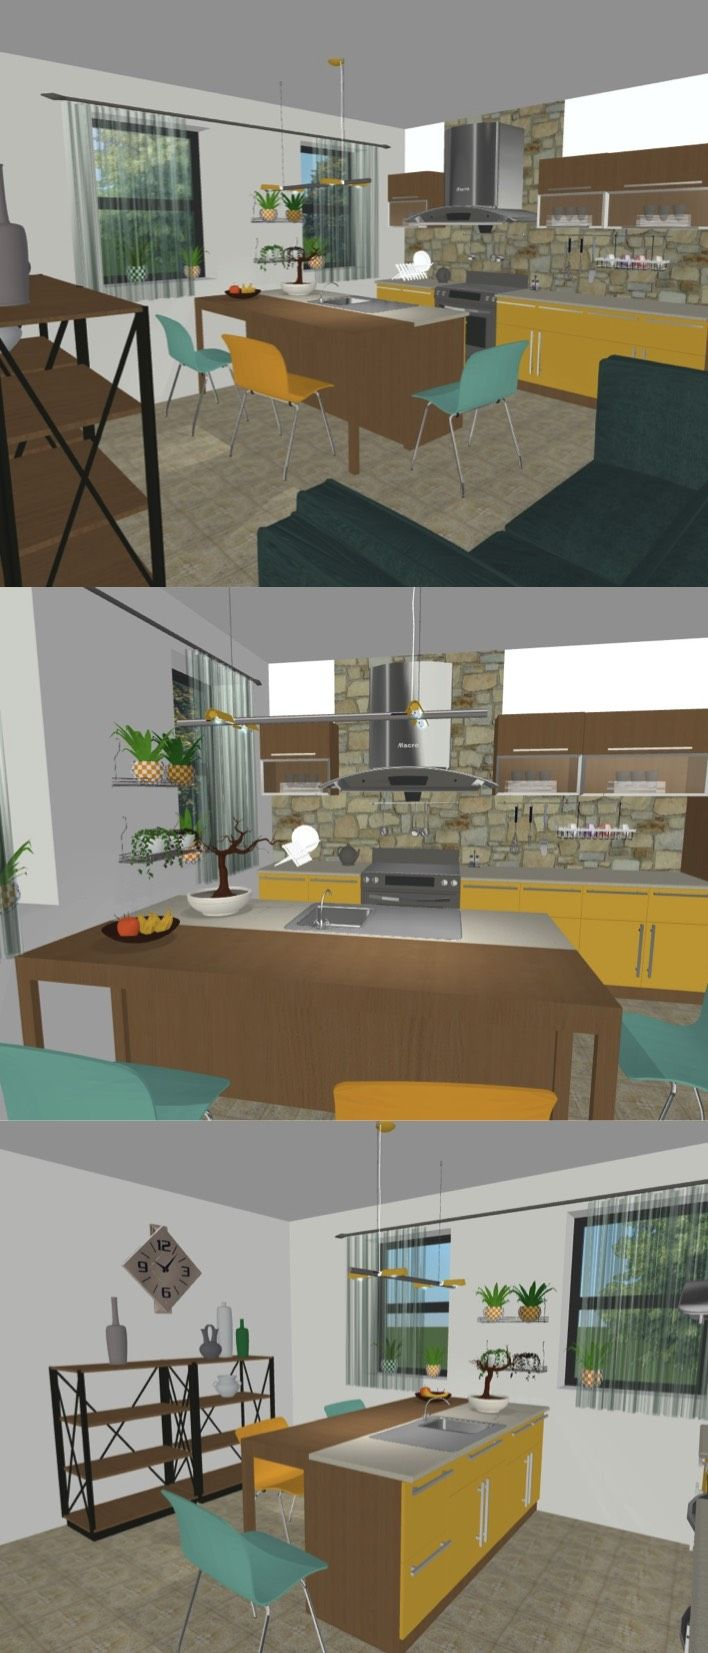 Look How Slick Can Your Kitchen Design Look With